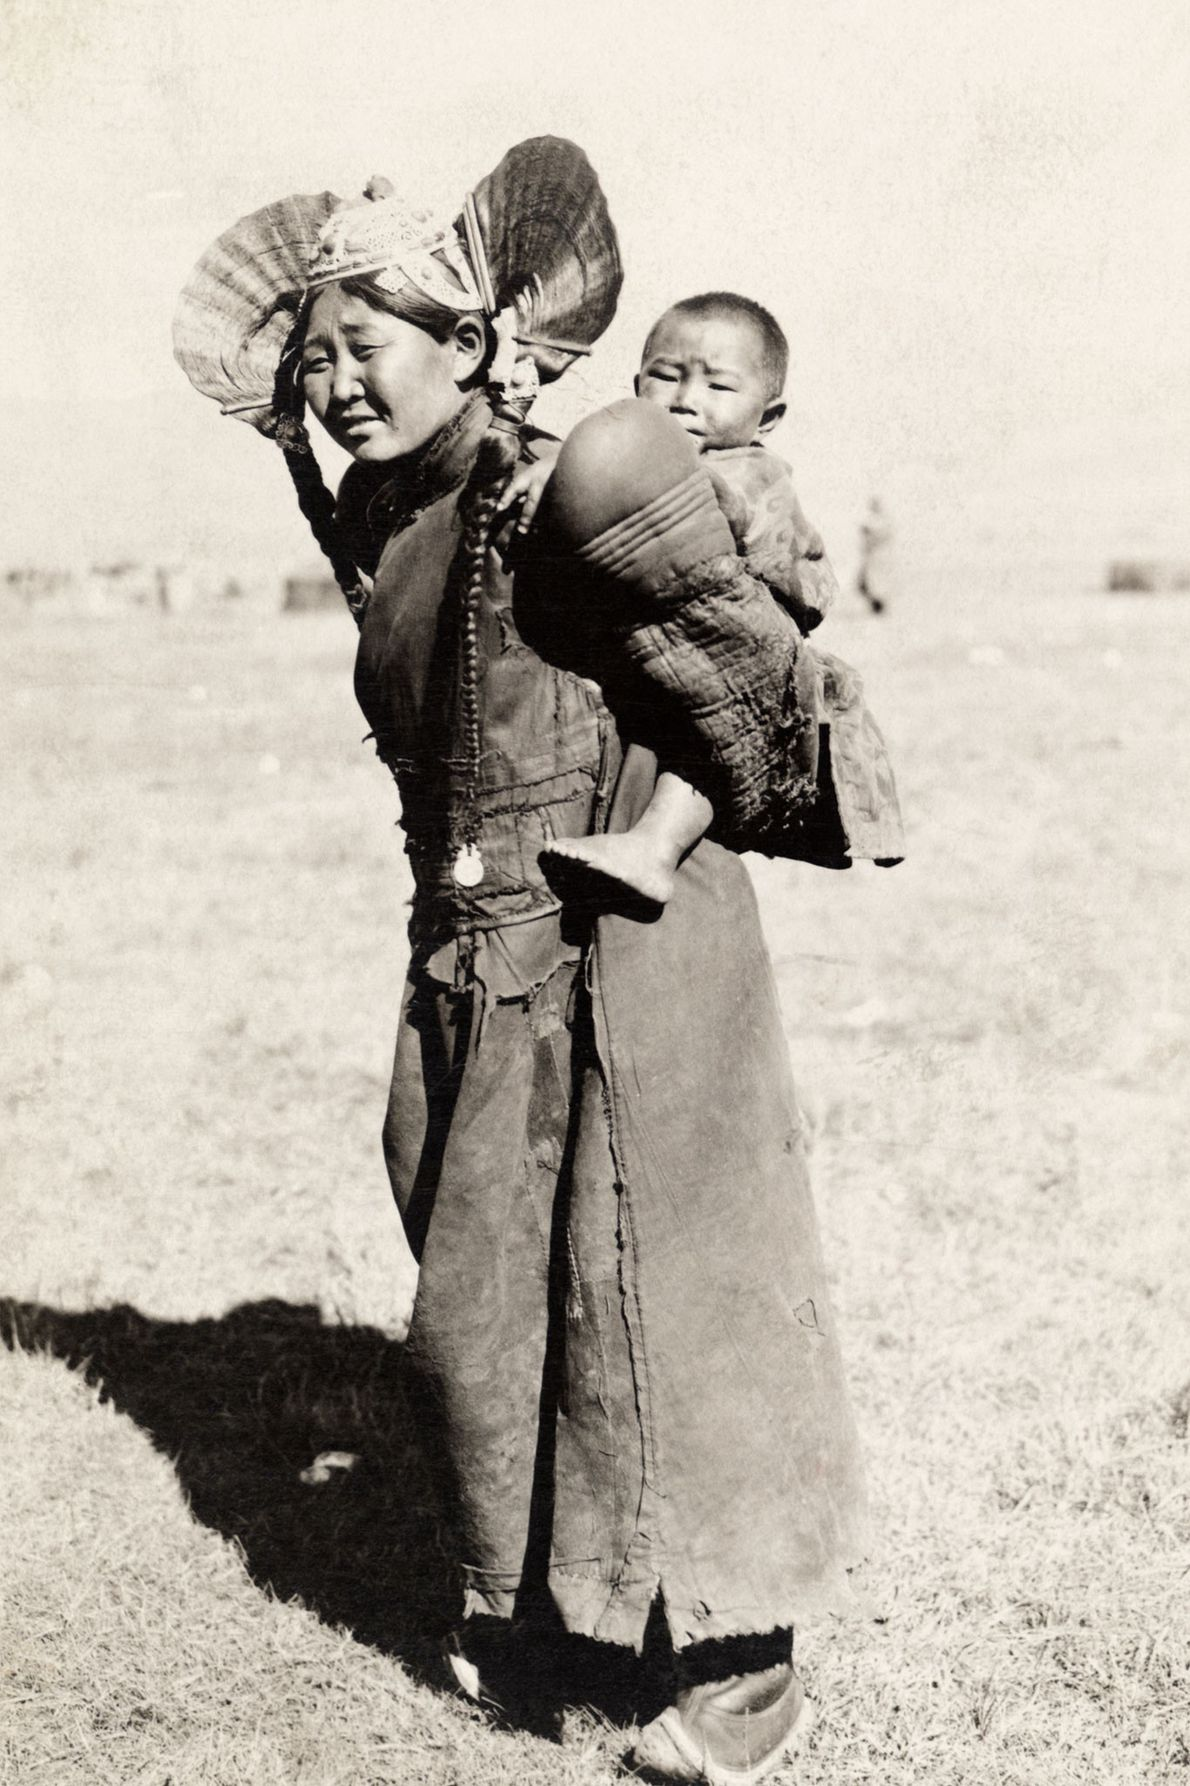 Dressed in traditional clothing, a woman in northern Mongolia carries her son on her back.